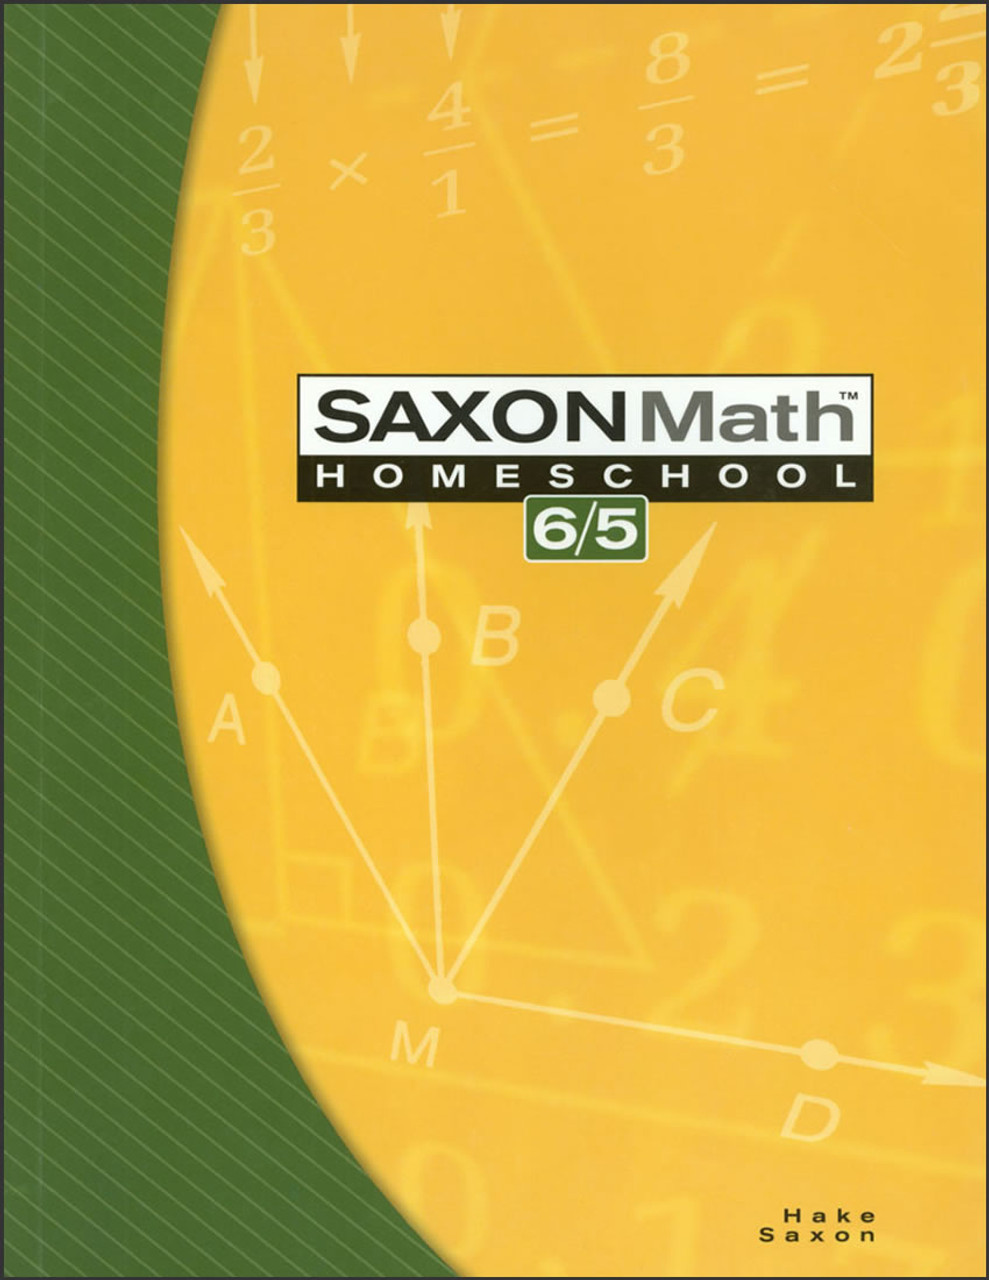 Saxon Math Homeschool 6/5, 3rd edition